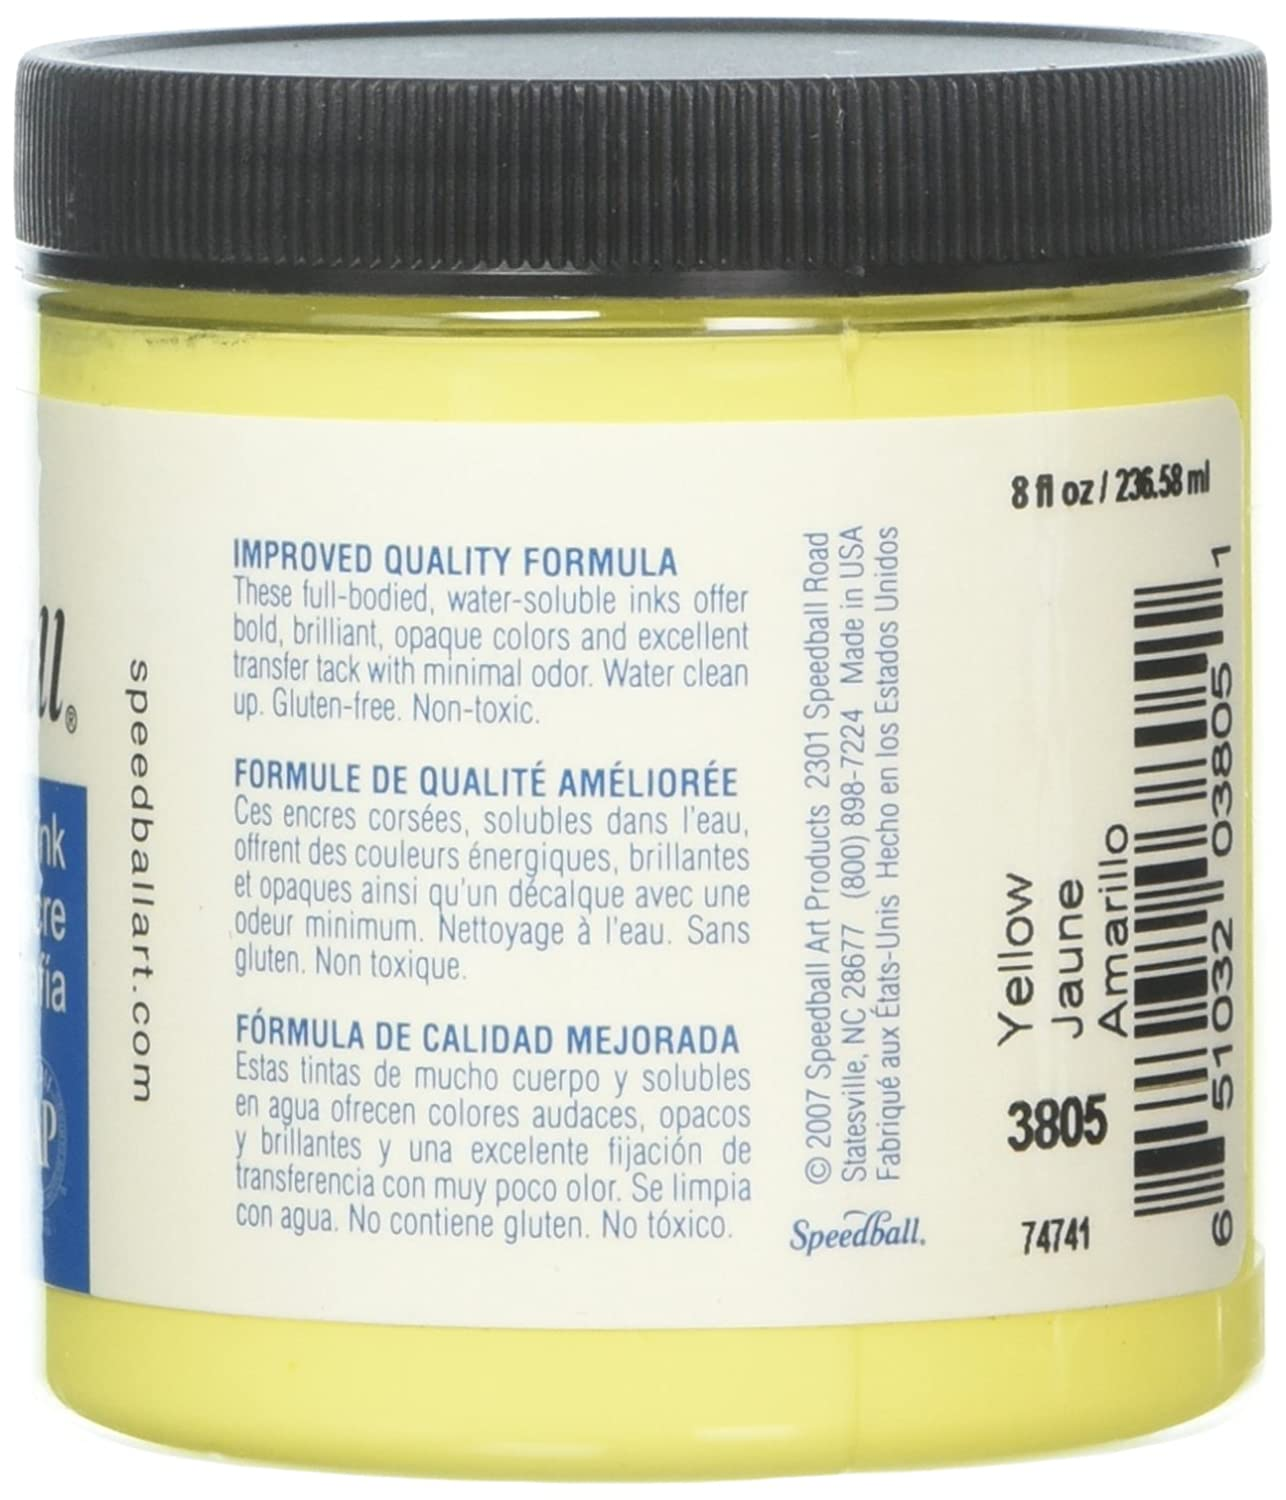 Amazon.com: Speedball 3805 Water-Soluble Block Printing Ink – Bold Color With Satin Finish AP Certified Non-Toxic - 8 FL OZ, Yellow: Arts, Crafts & Sewing